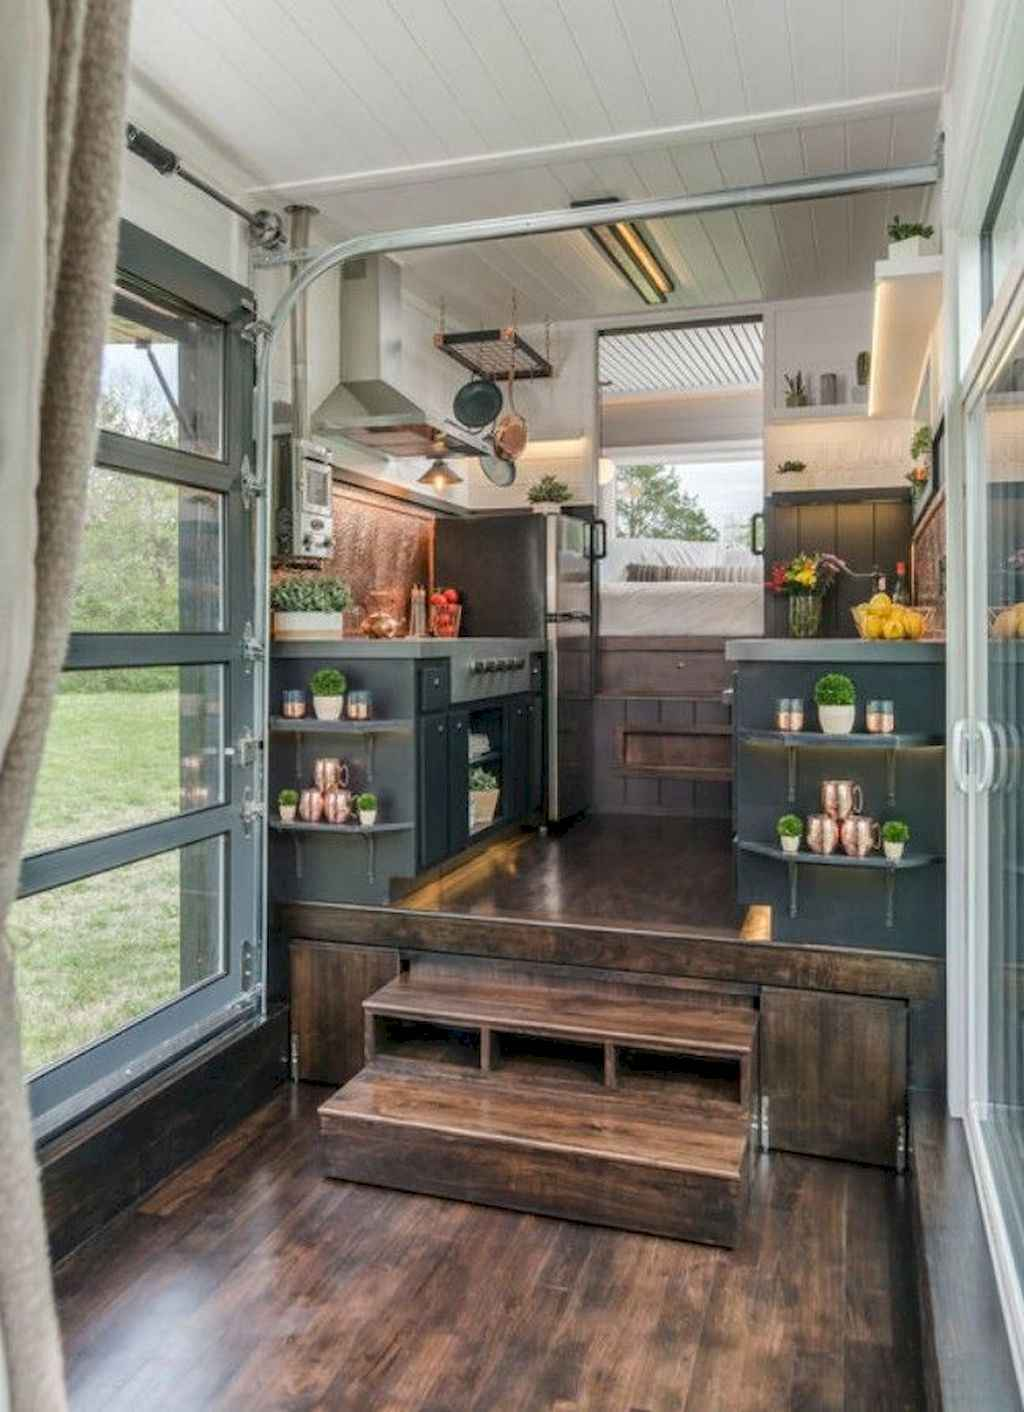 24 Tiny House Kitchen Storage Organization and Tips Ideas